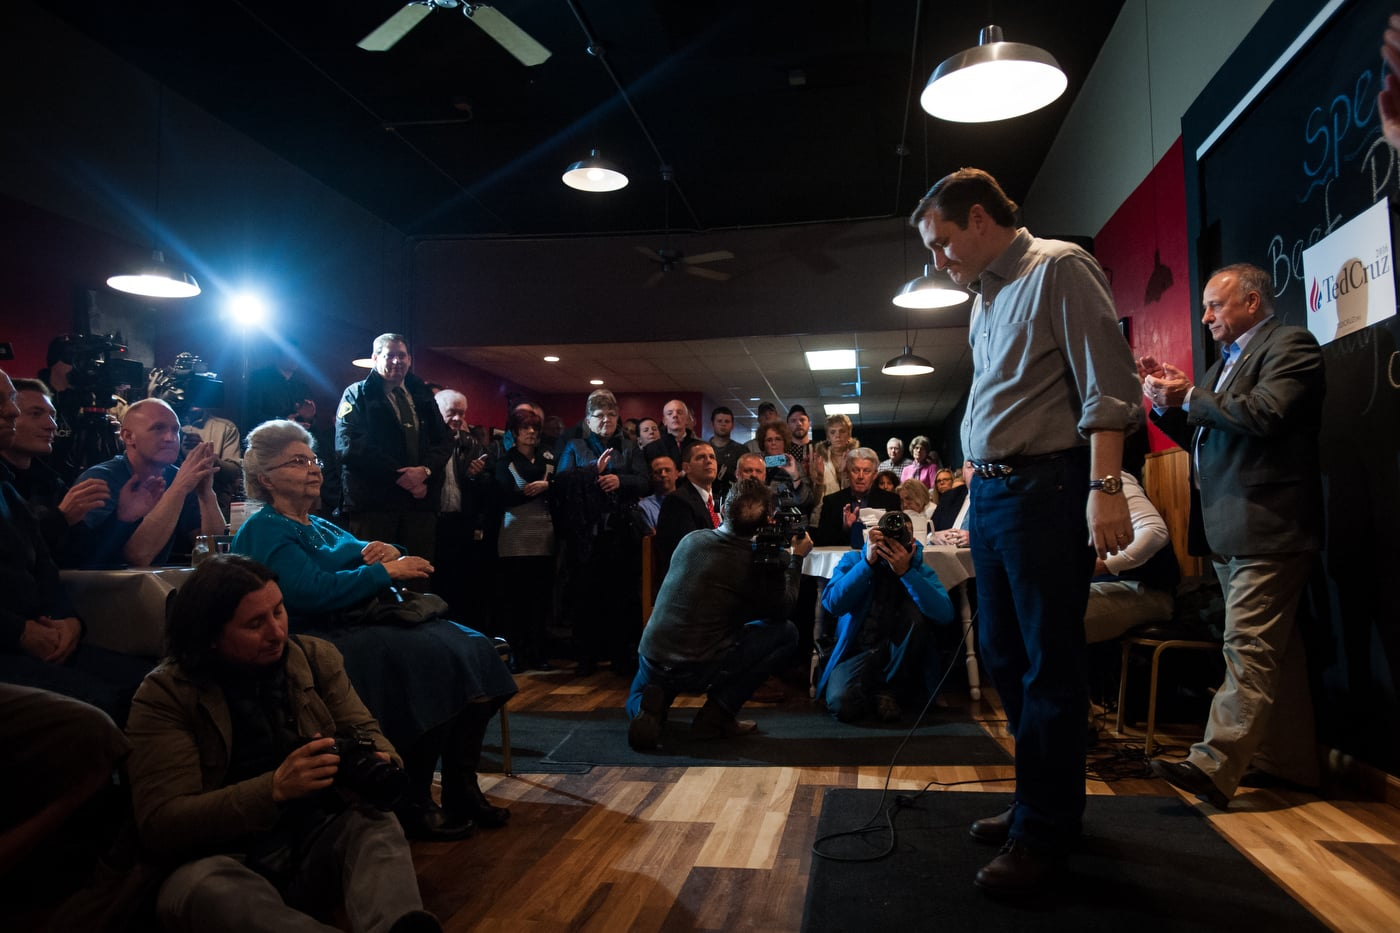 U.S. Republican presidential candidate Ted Cruz bows his head during applause after speaking at a campaign stop at Union Jacks Grill in Rock Rapids, Iowa January 6, 2016.